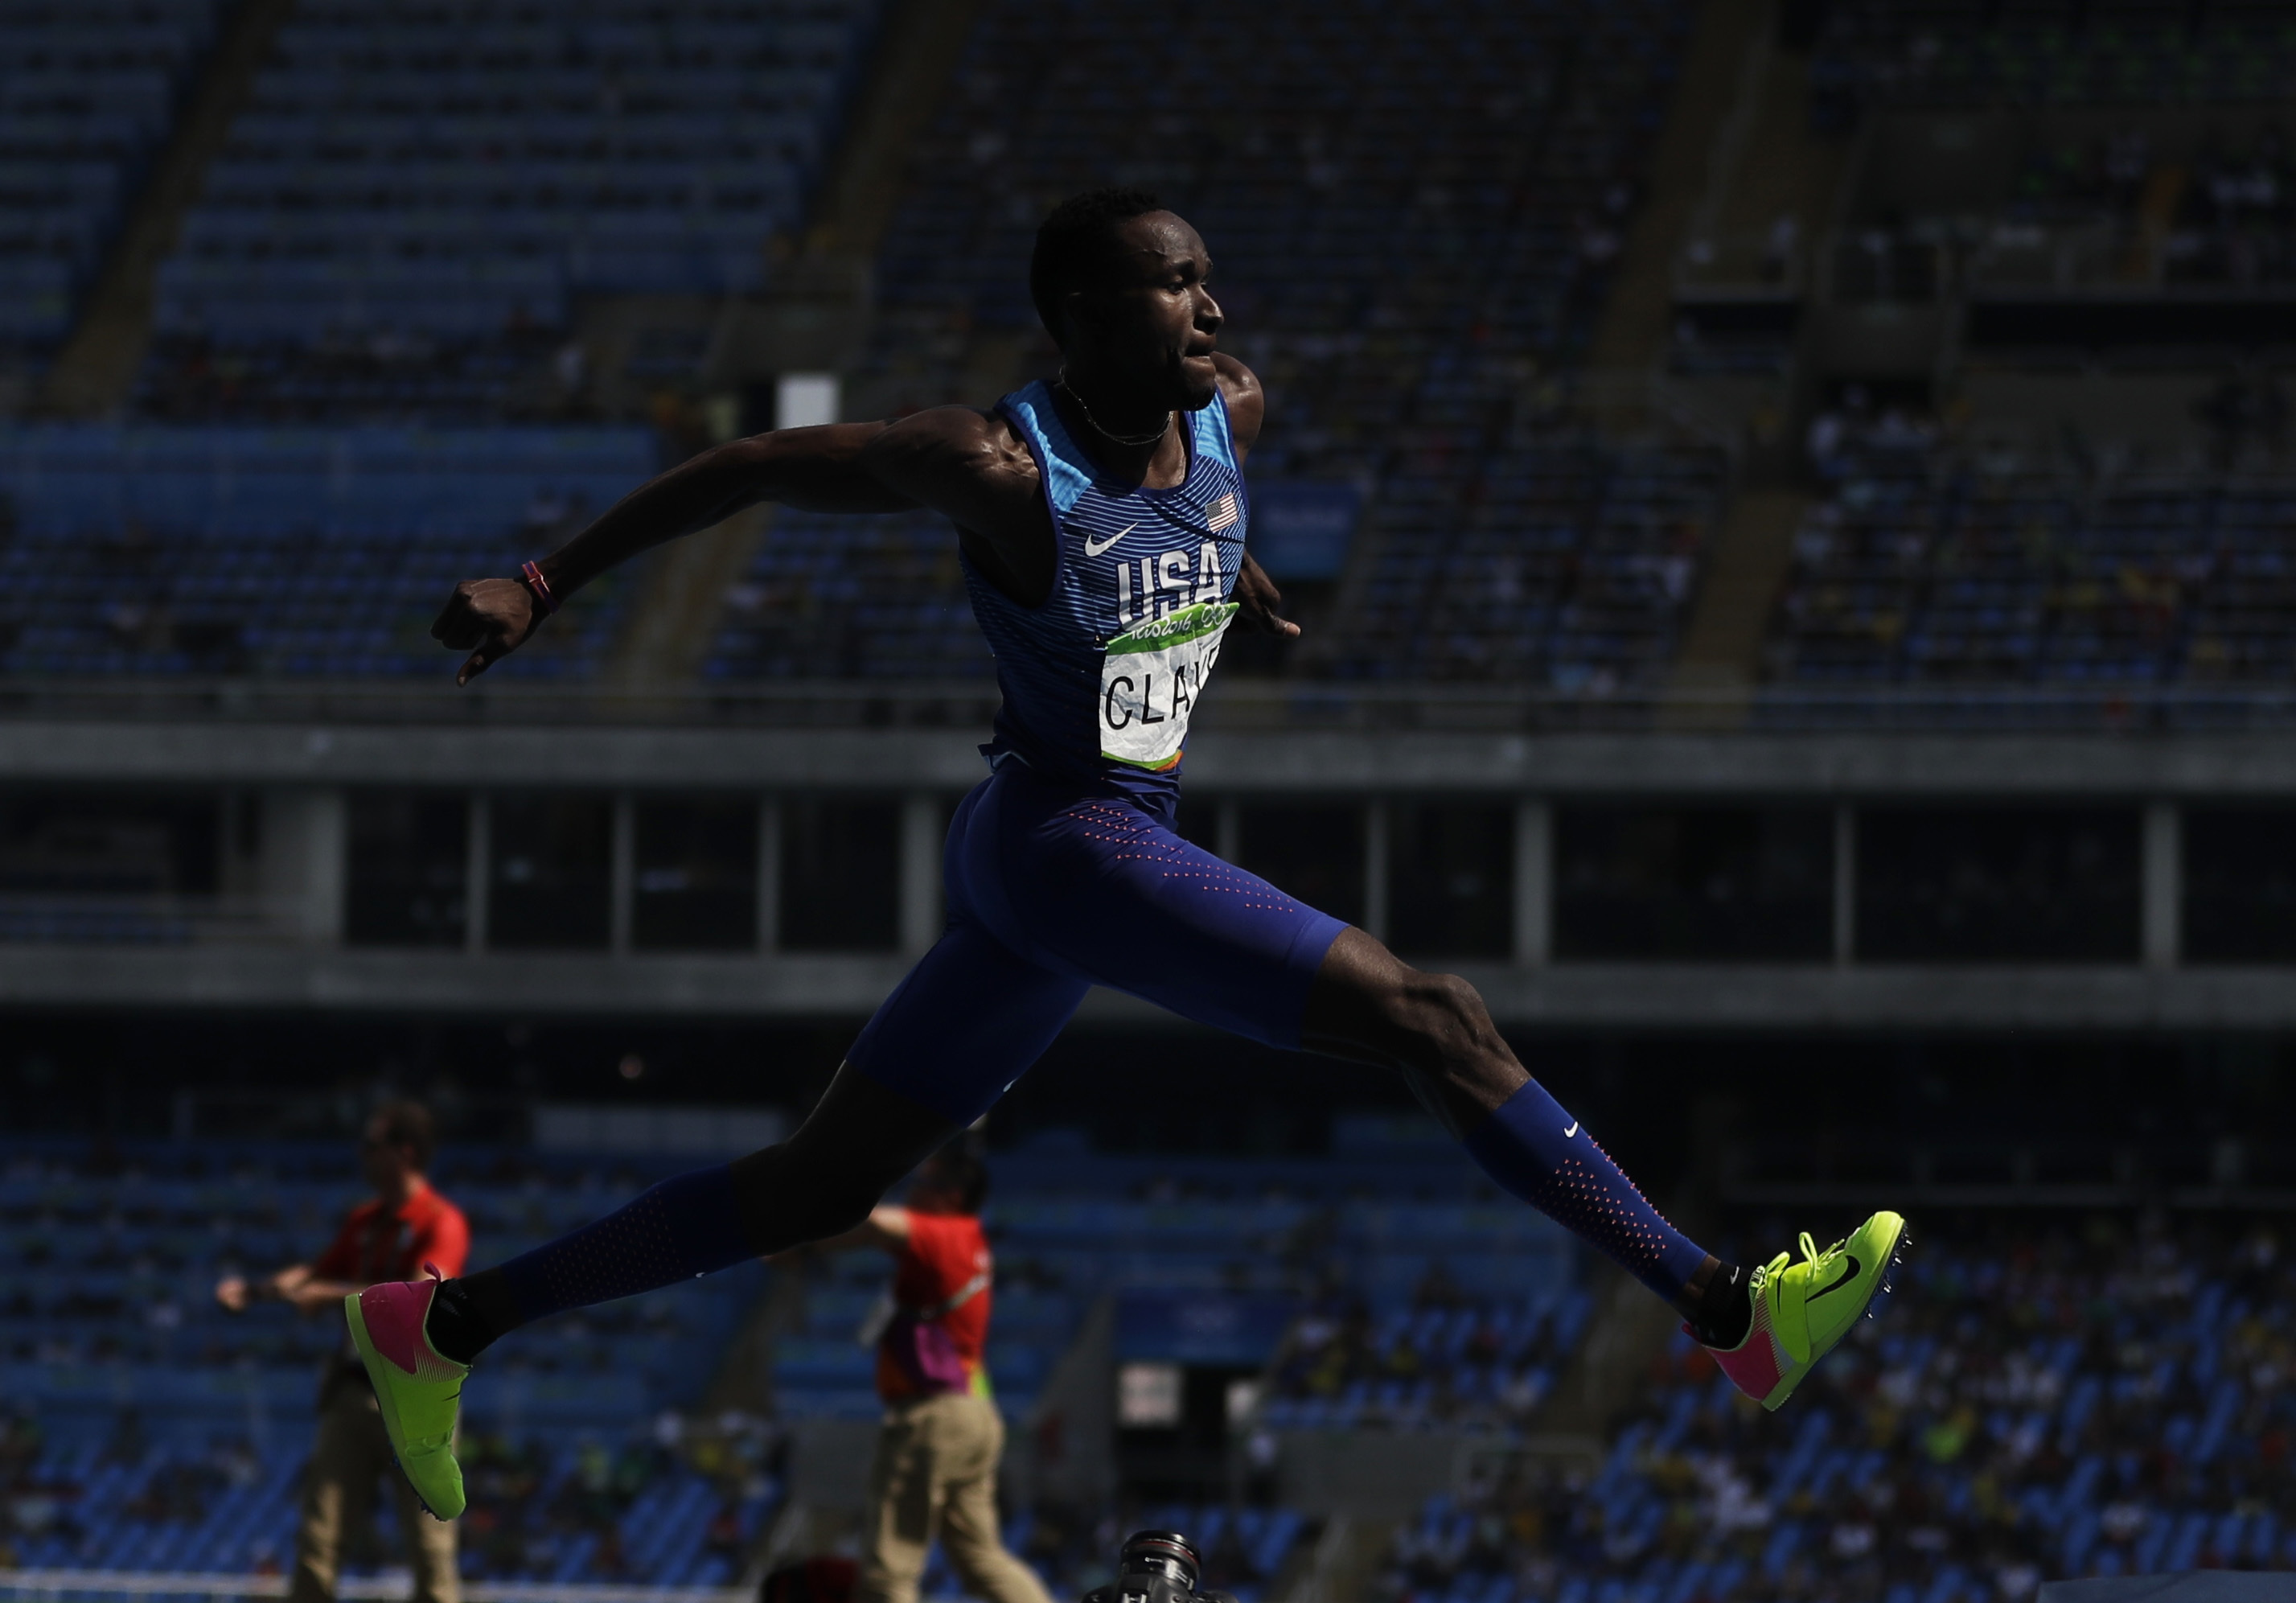 United States' Will Claye makes an attempt in the men's triple jump final during the athletics competitions of the 2016 Summer Olympics at the Olympic stadium in Rio de Janeiro, Brazil, Tuesday, Aug. 16, 2016. (AP Photo/Matt Slocum)